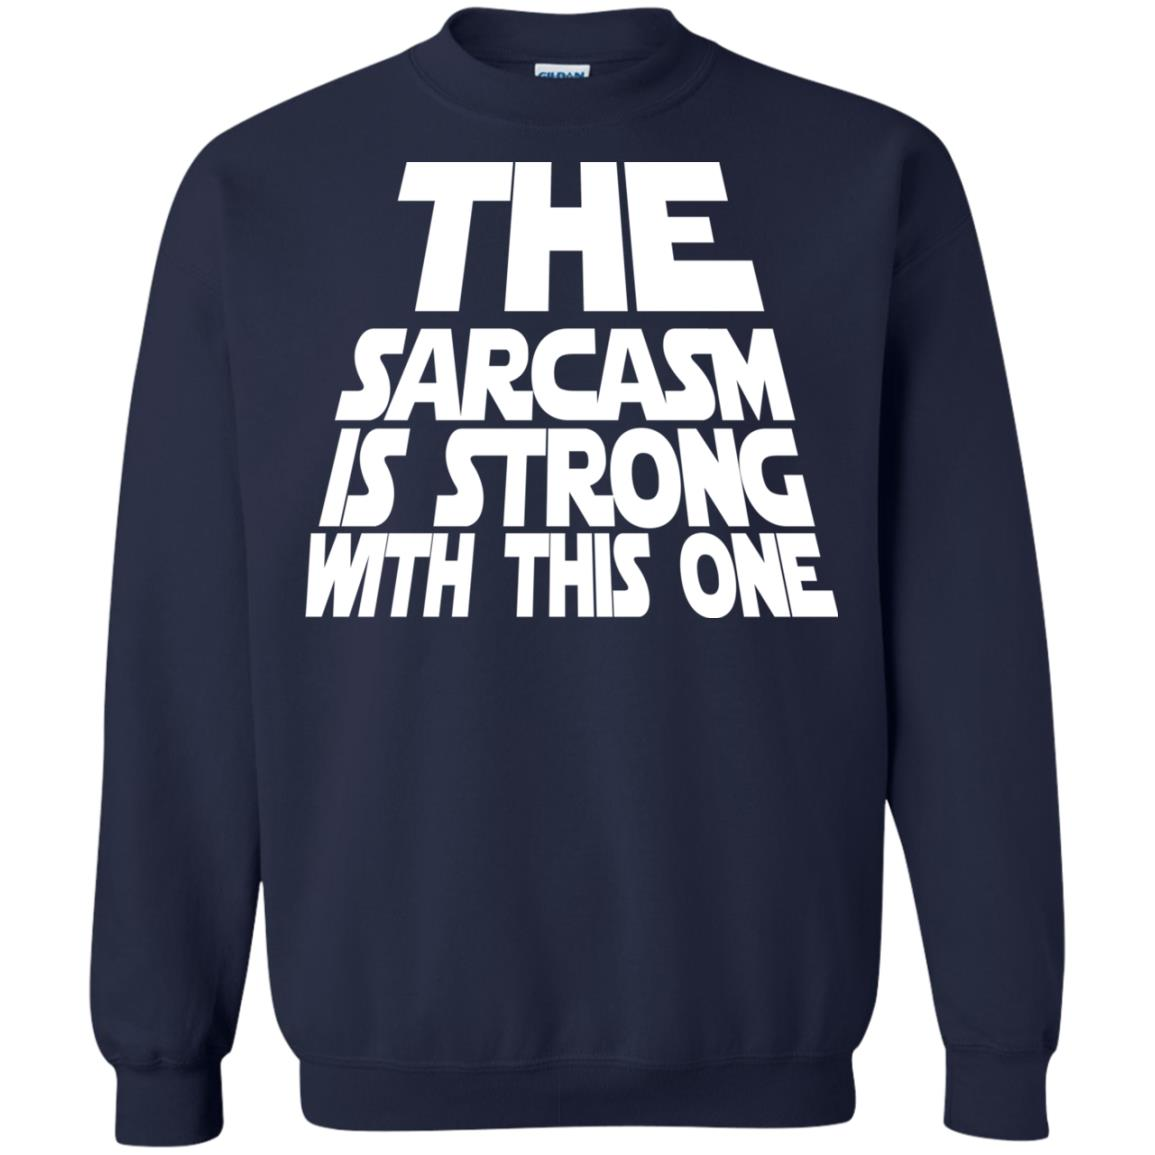 image 1799 - The Sarcasm is strong with this one shirt